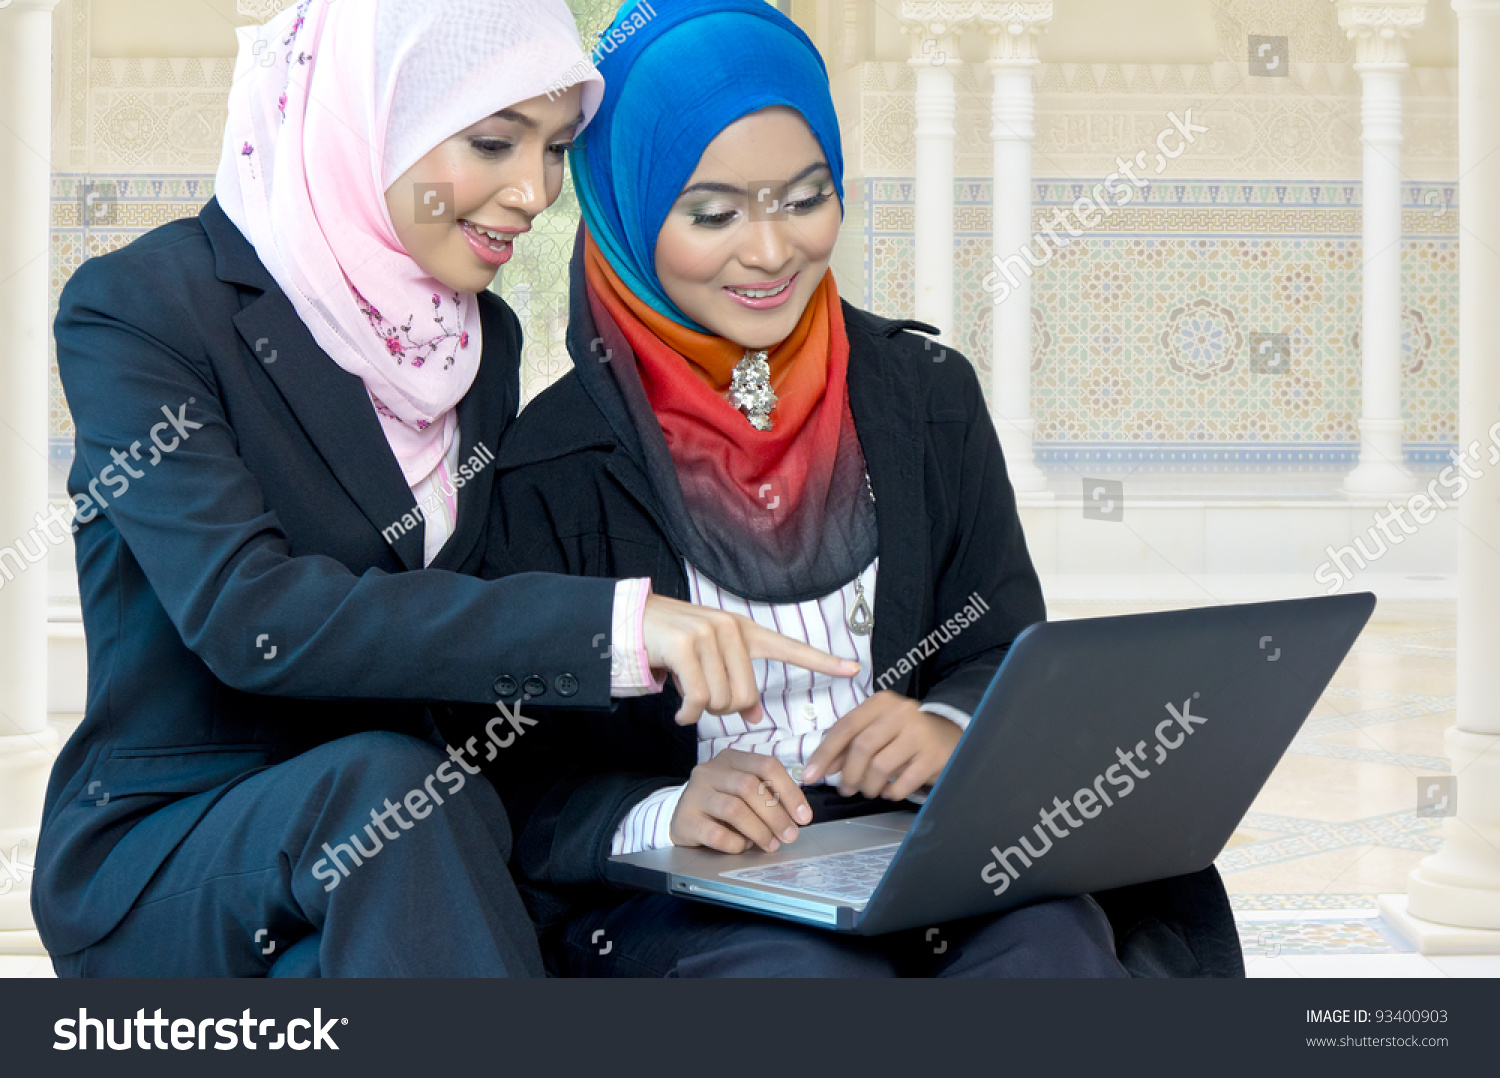 shawnee on delaware single muslim girls Baby names in islamic religion are impressive, classy and stylish check our list of muslim baby names for boys and girls with meanings and take your pick.